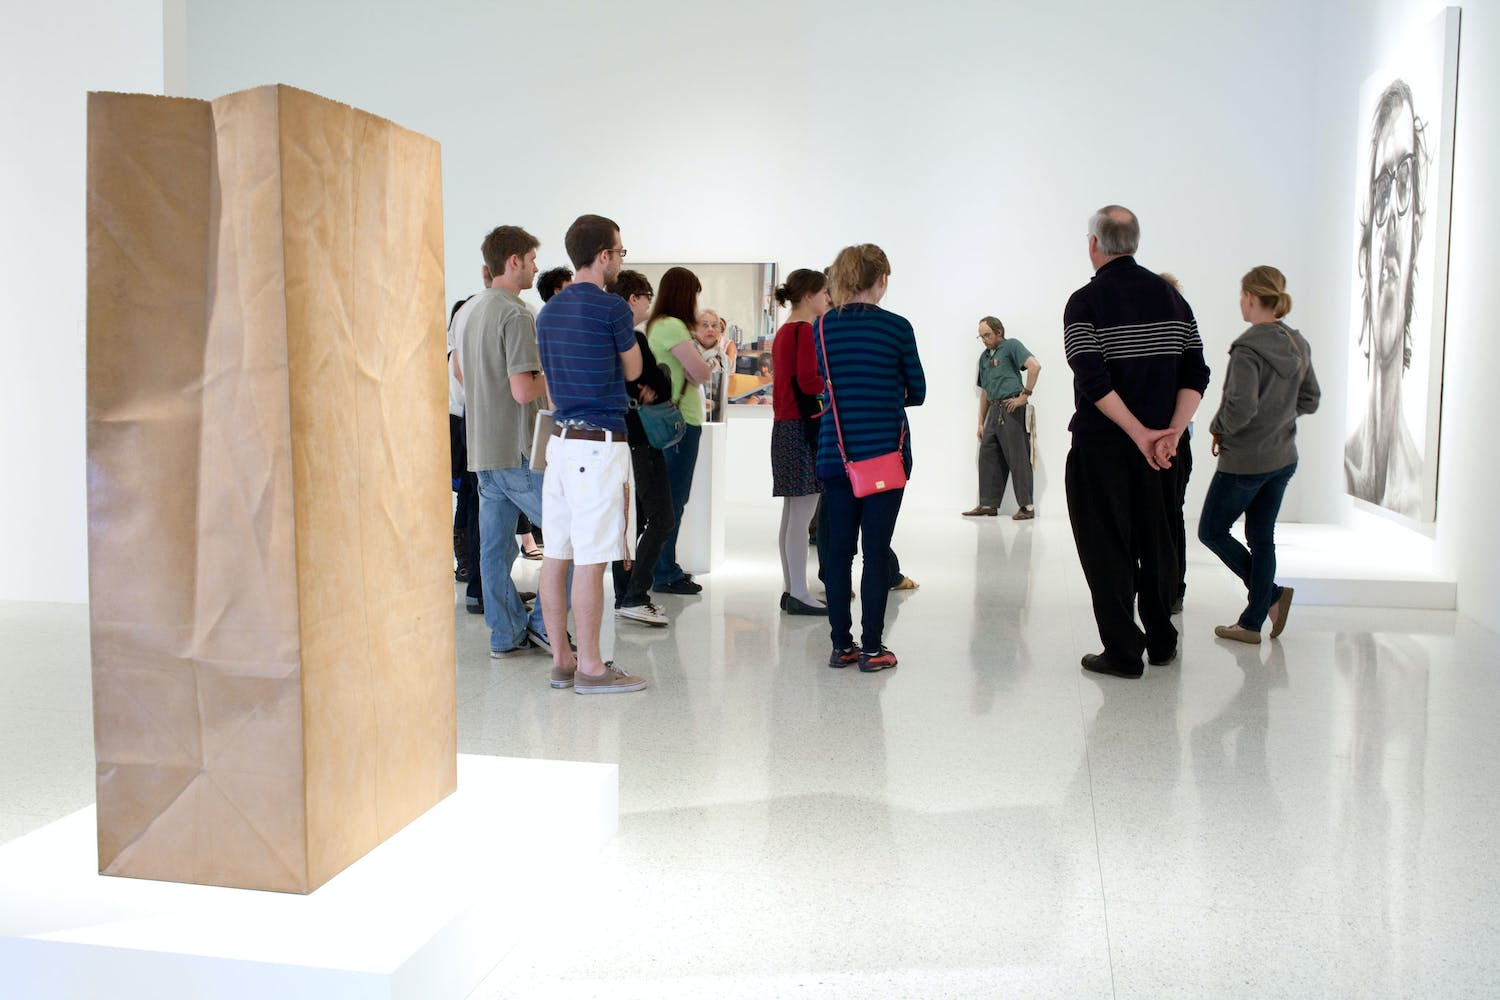 Installation view of the exhibition Lifelike, 2012